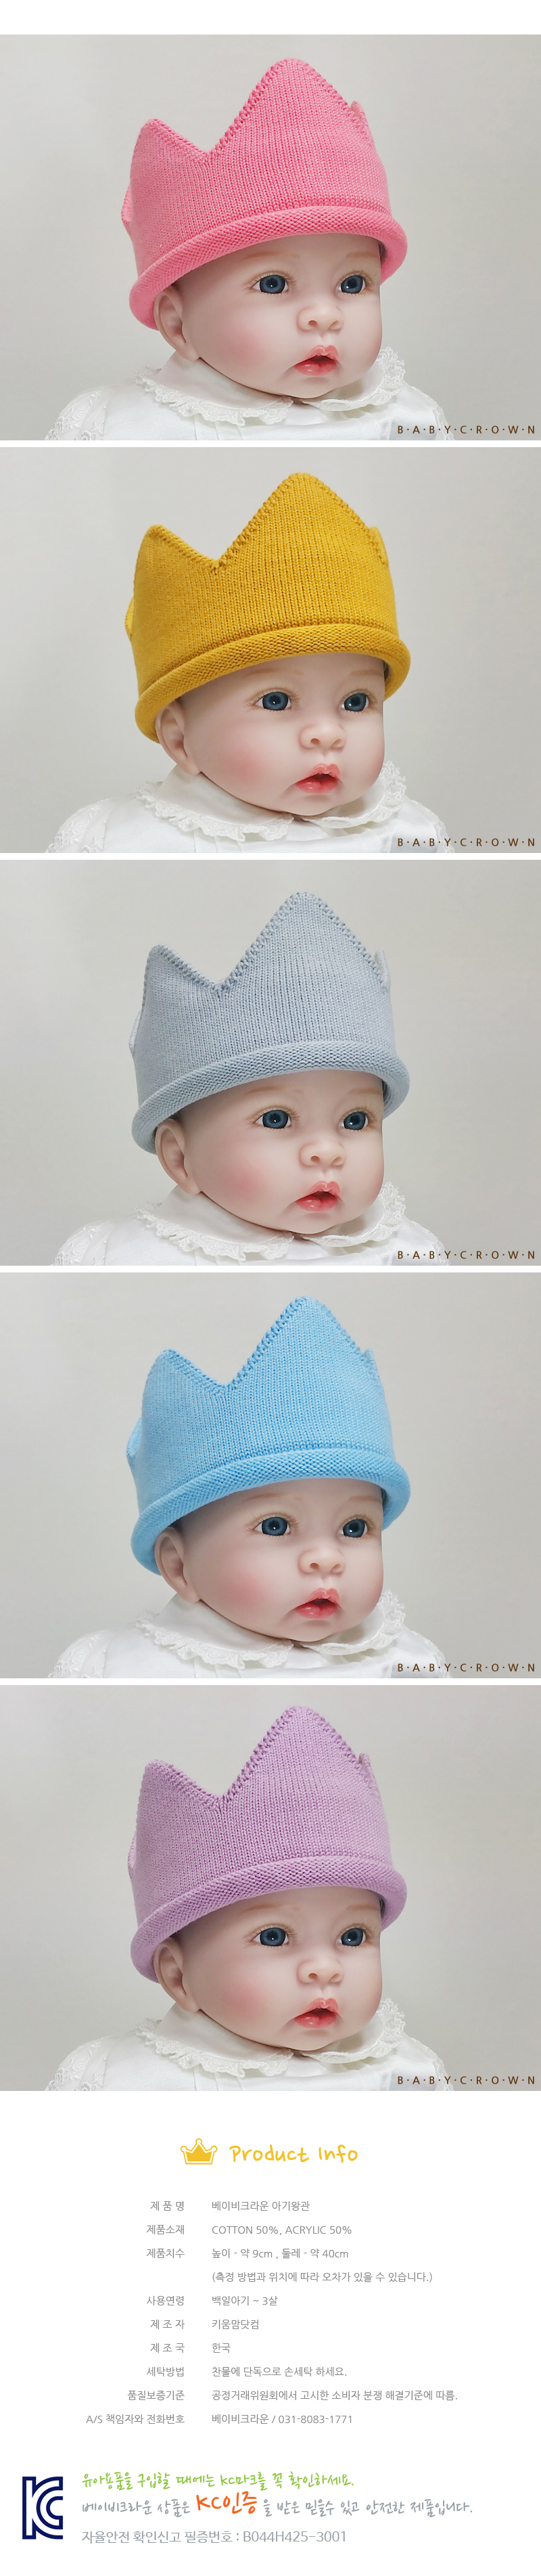 [ Babycrown ] [Baby Crown] baby knit crown cutie (sky)